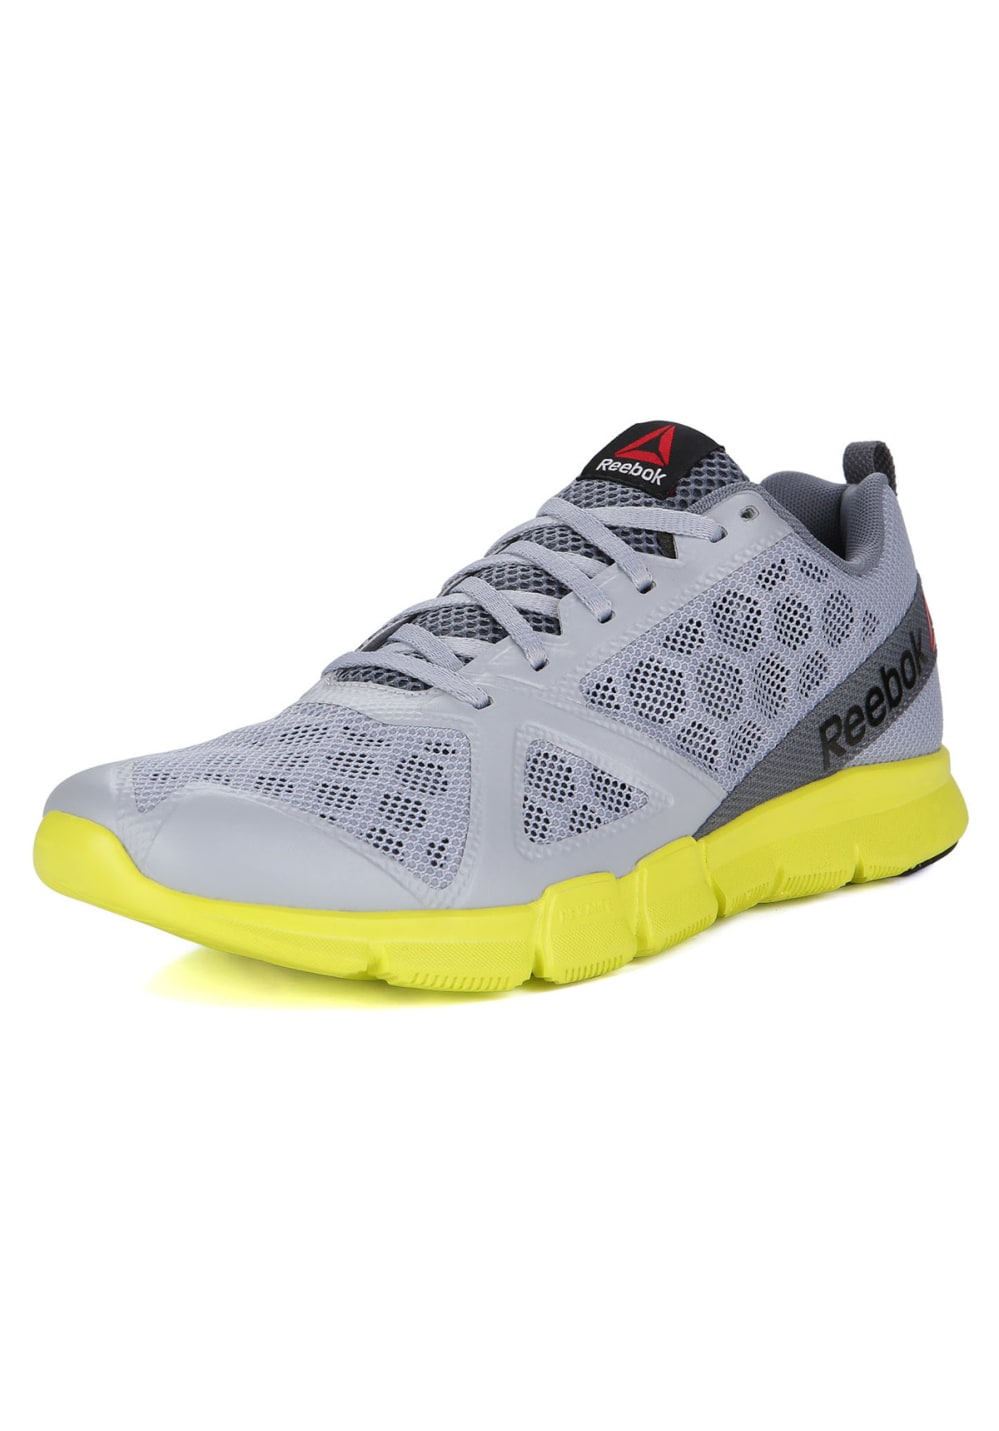 ... Reebok Hexalite TR - Fitness shoes for Men - Grey. Back to Overview. 1   2  3  4  5. Previous 55636a957